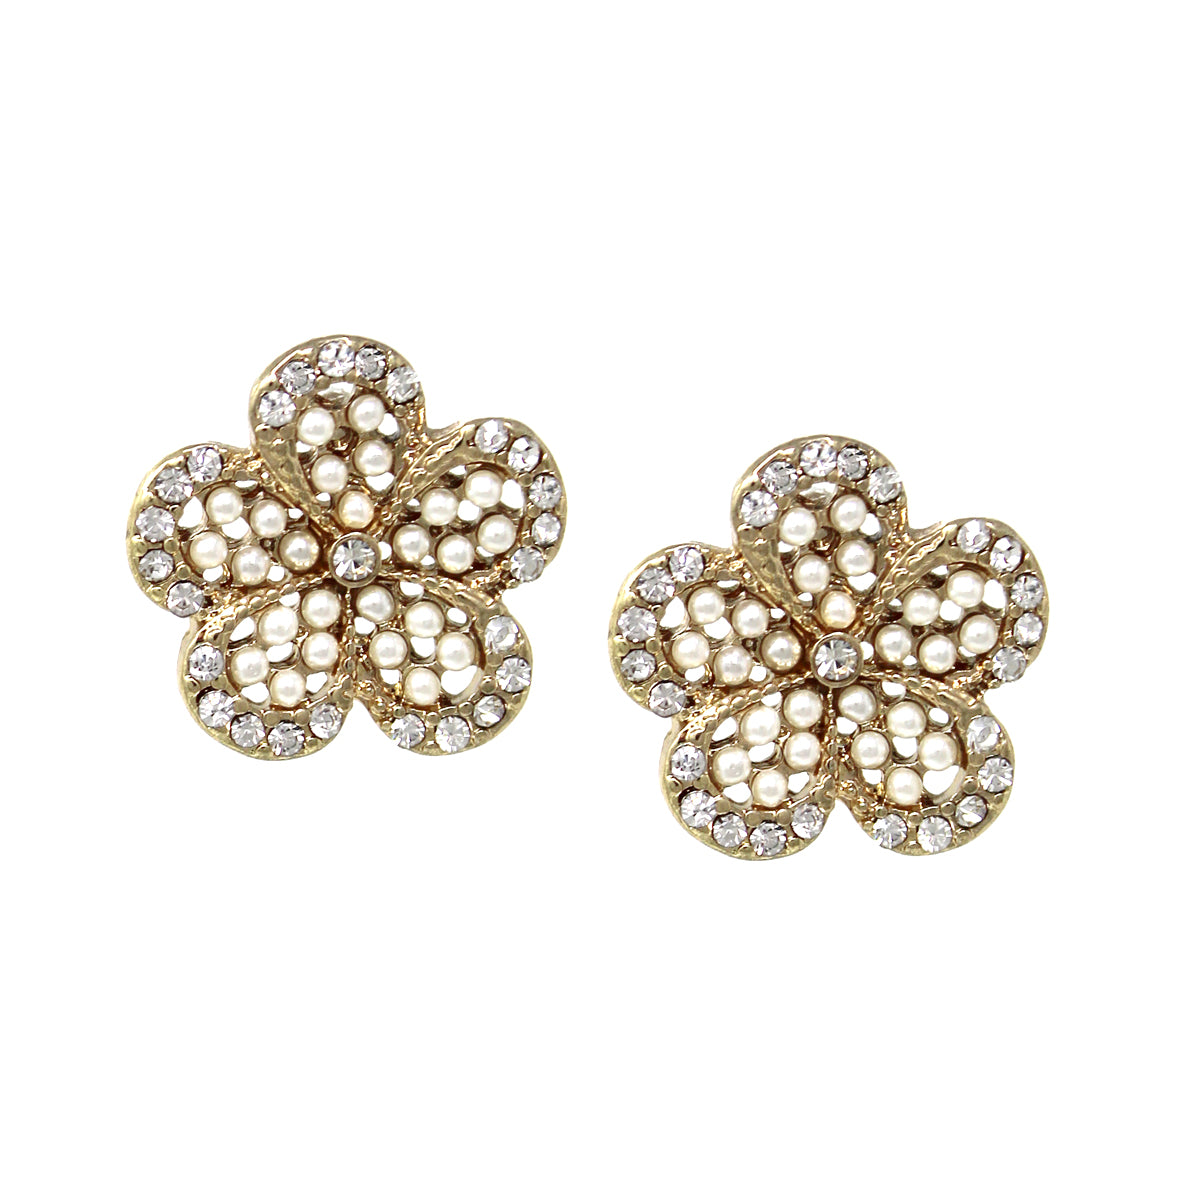 Rhinestone With Pearl Bead Pave Flower Stud Earrings